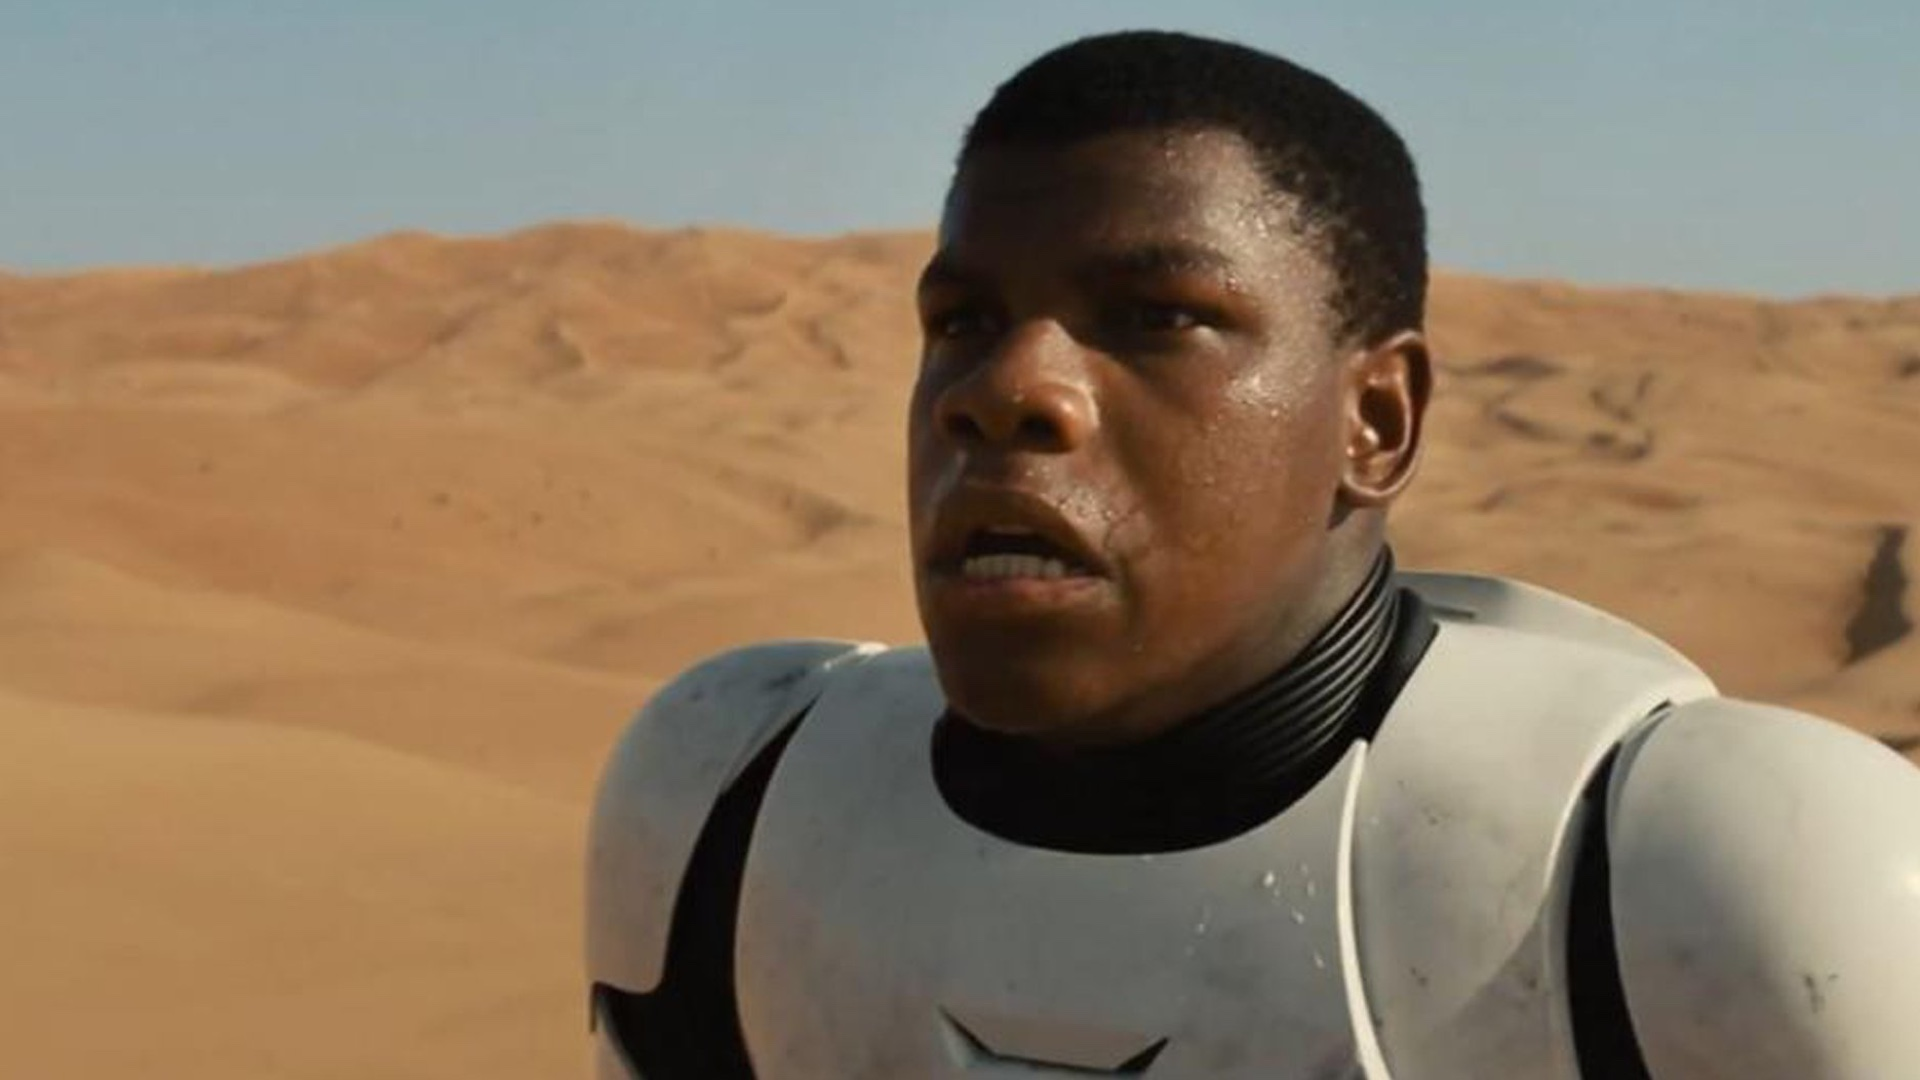 john-boyega-set-to-produce-a-fantasy-horror-thriller-called-a-spriggan-social.jpg